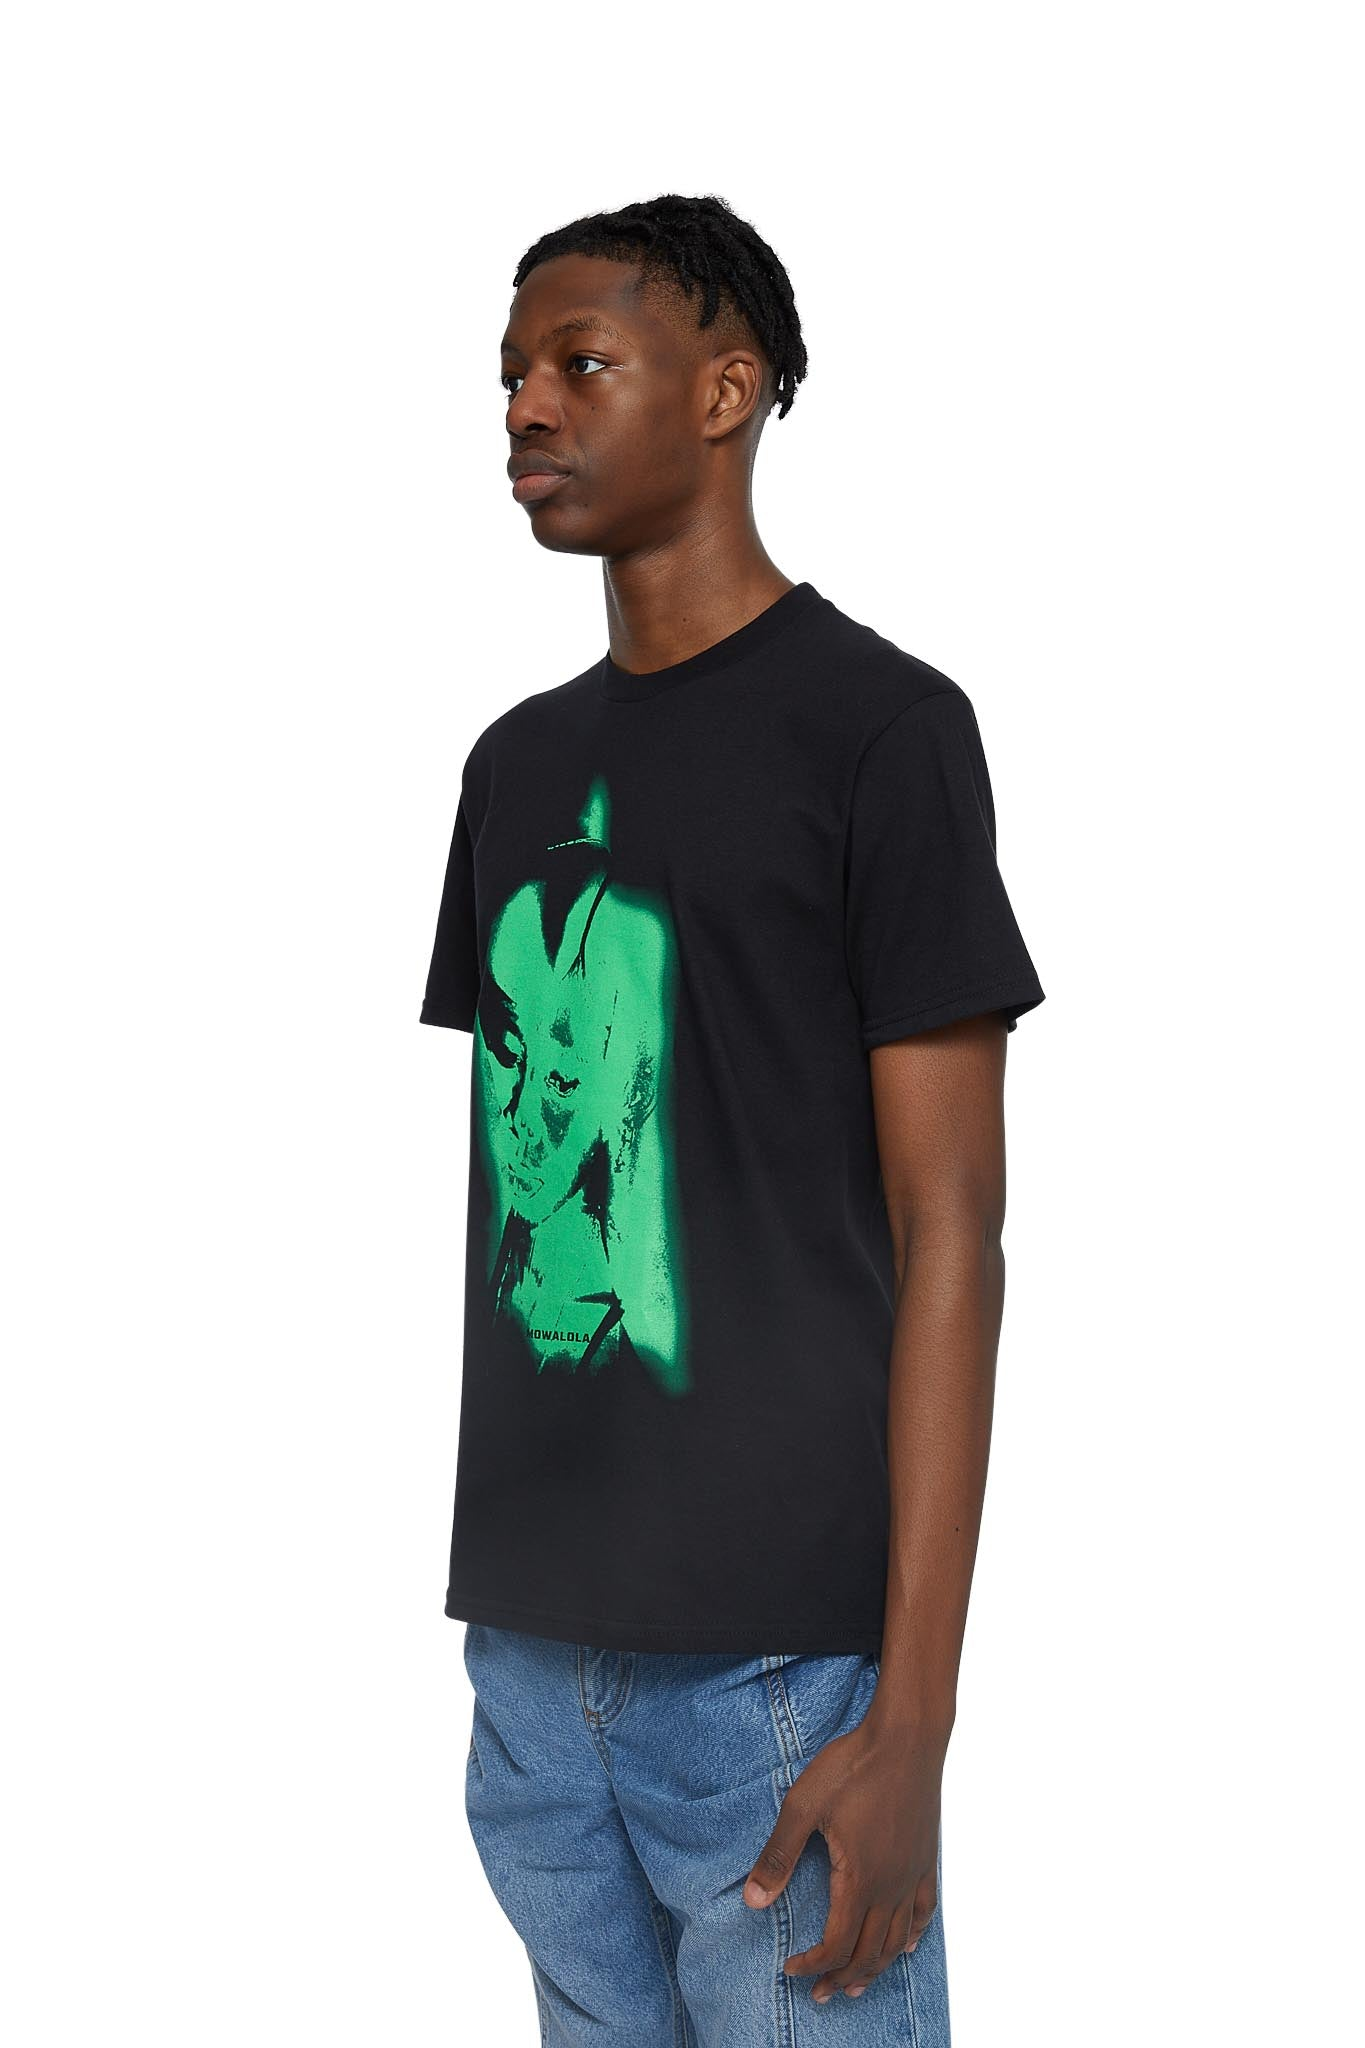 mowalola, another man's wife tee, BLACK / GREEN, AW20M04, T-SHIRT, AW20, GRAPHIC, MENS, PRINT, T-SHIRT